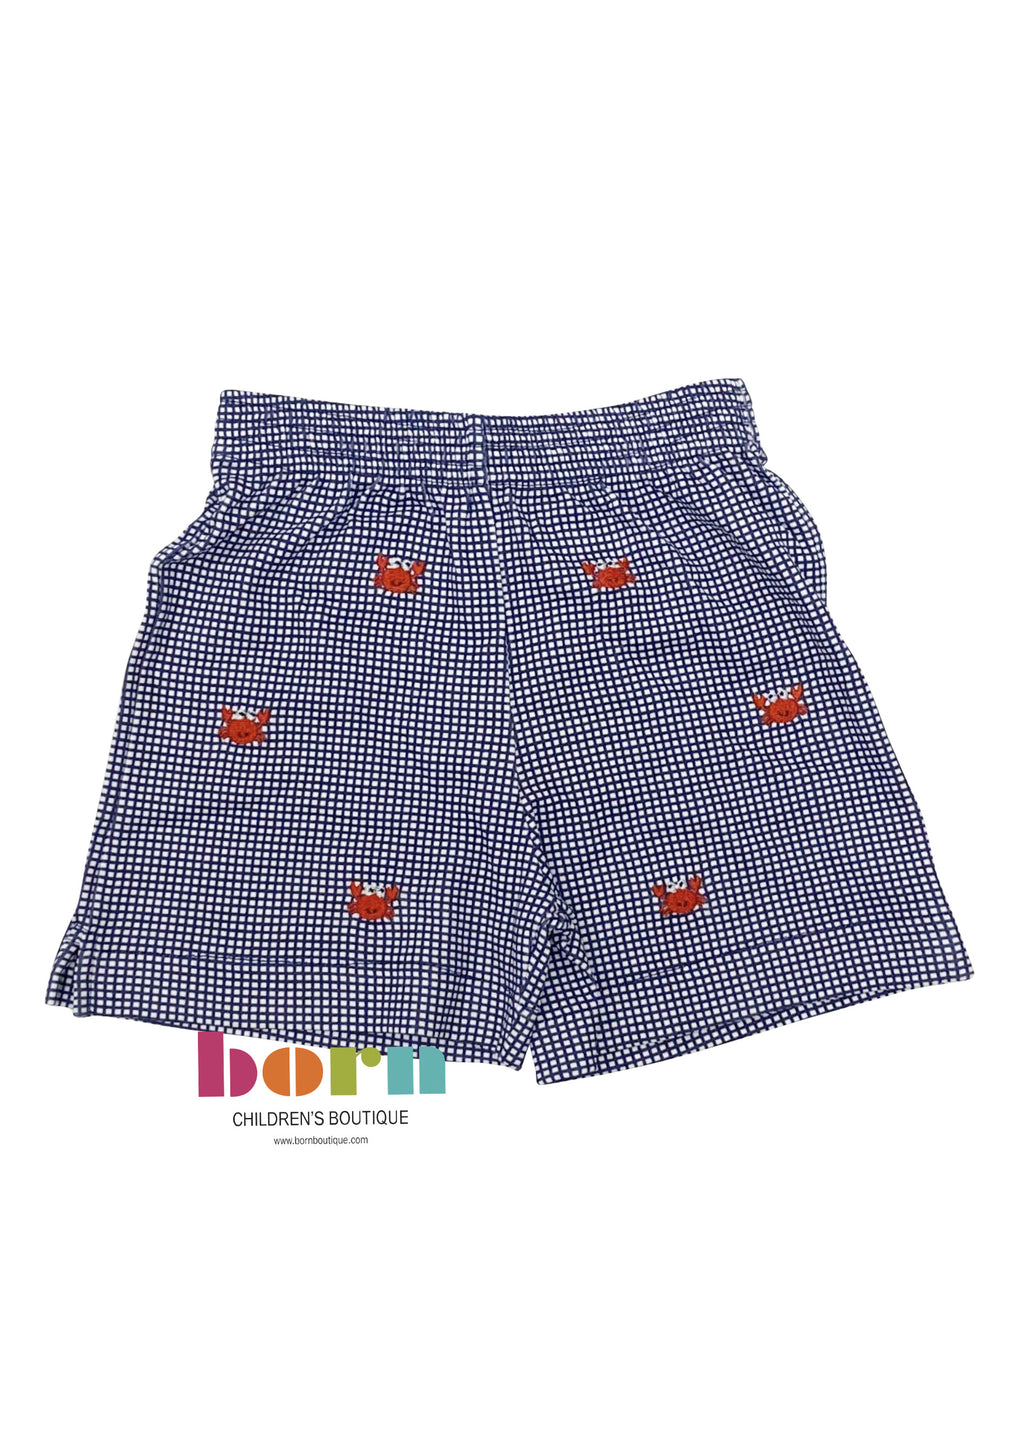 Navy Gingham Shorts with Crab - Born Childrens Boutique